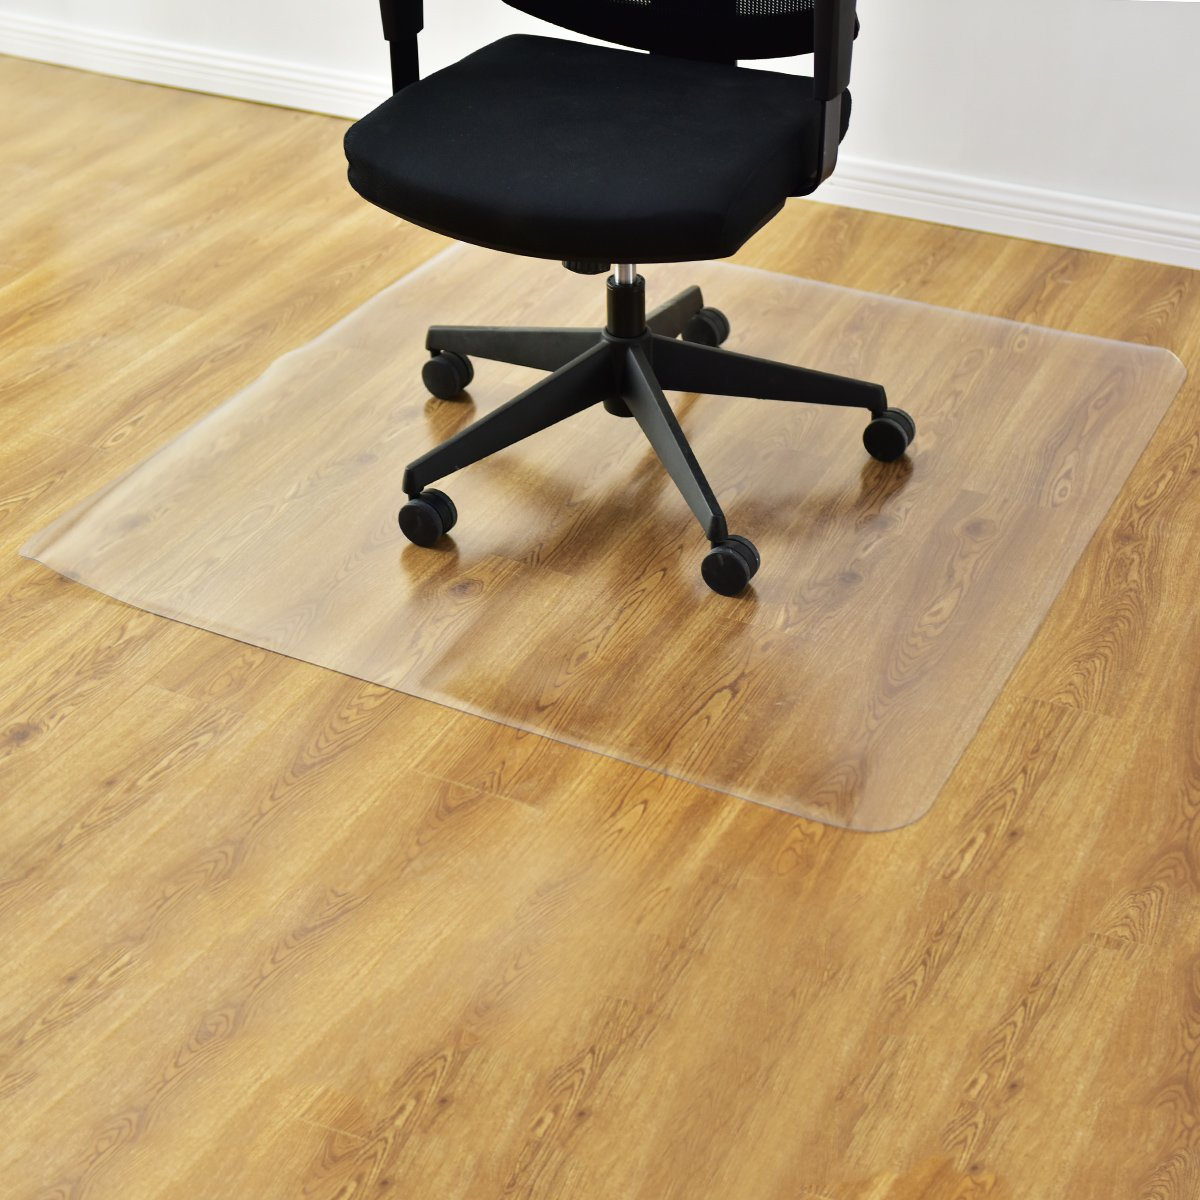 GOFLAME Desk Chair Floor Mat for Hardwood Floor, PVC Plastic Clear Mat Oversized, Premium Quality Floor Protection Mat Heavy Duty, Thick and Sturdy (Clear) by GOFLAME